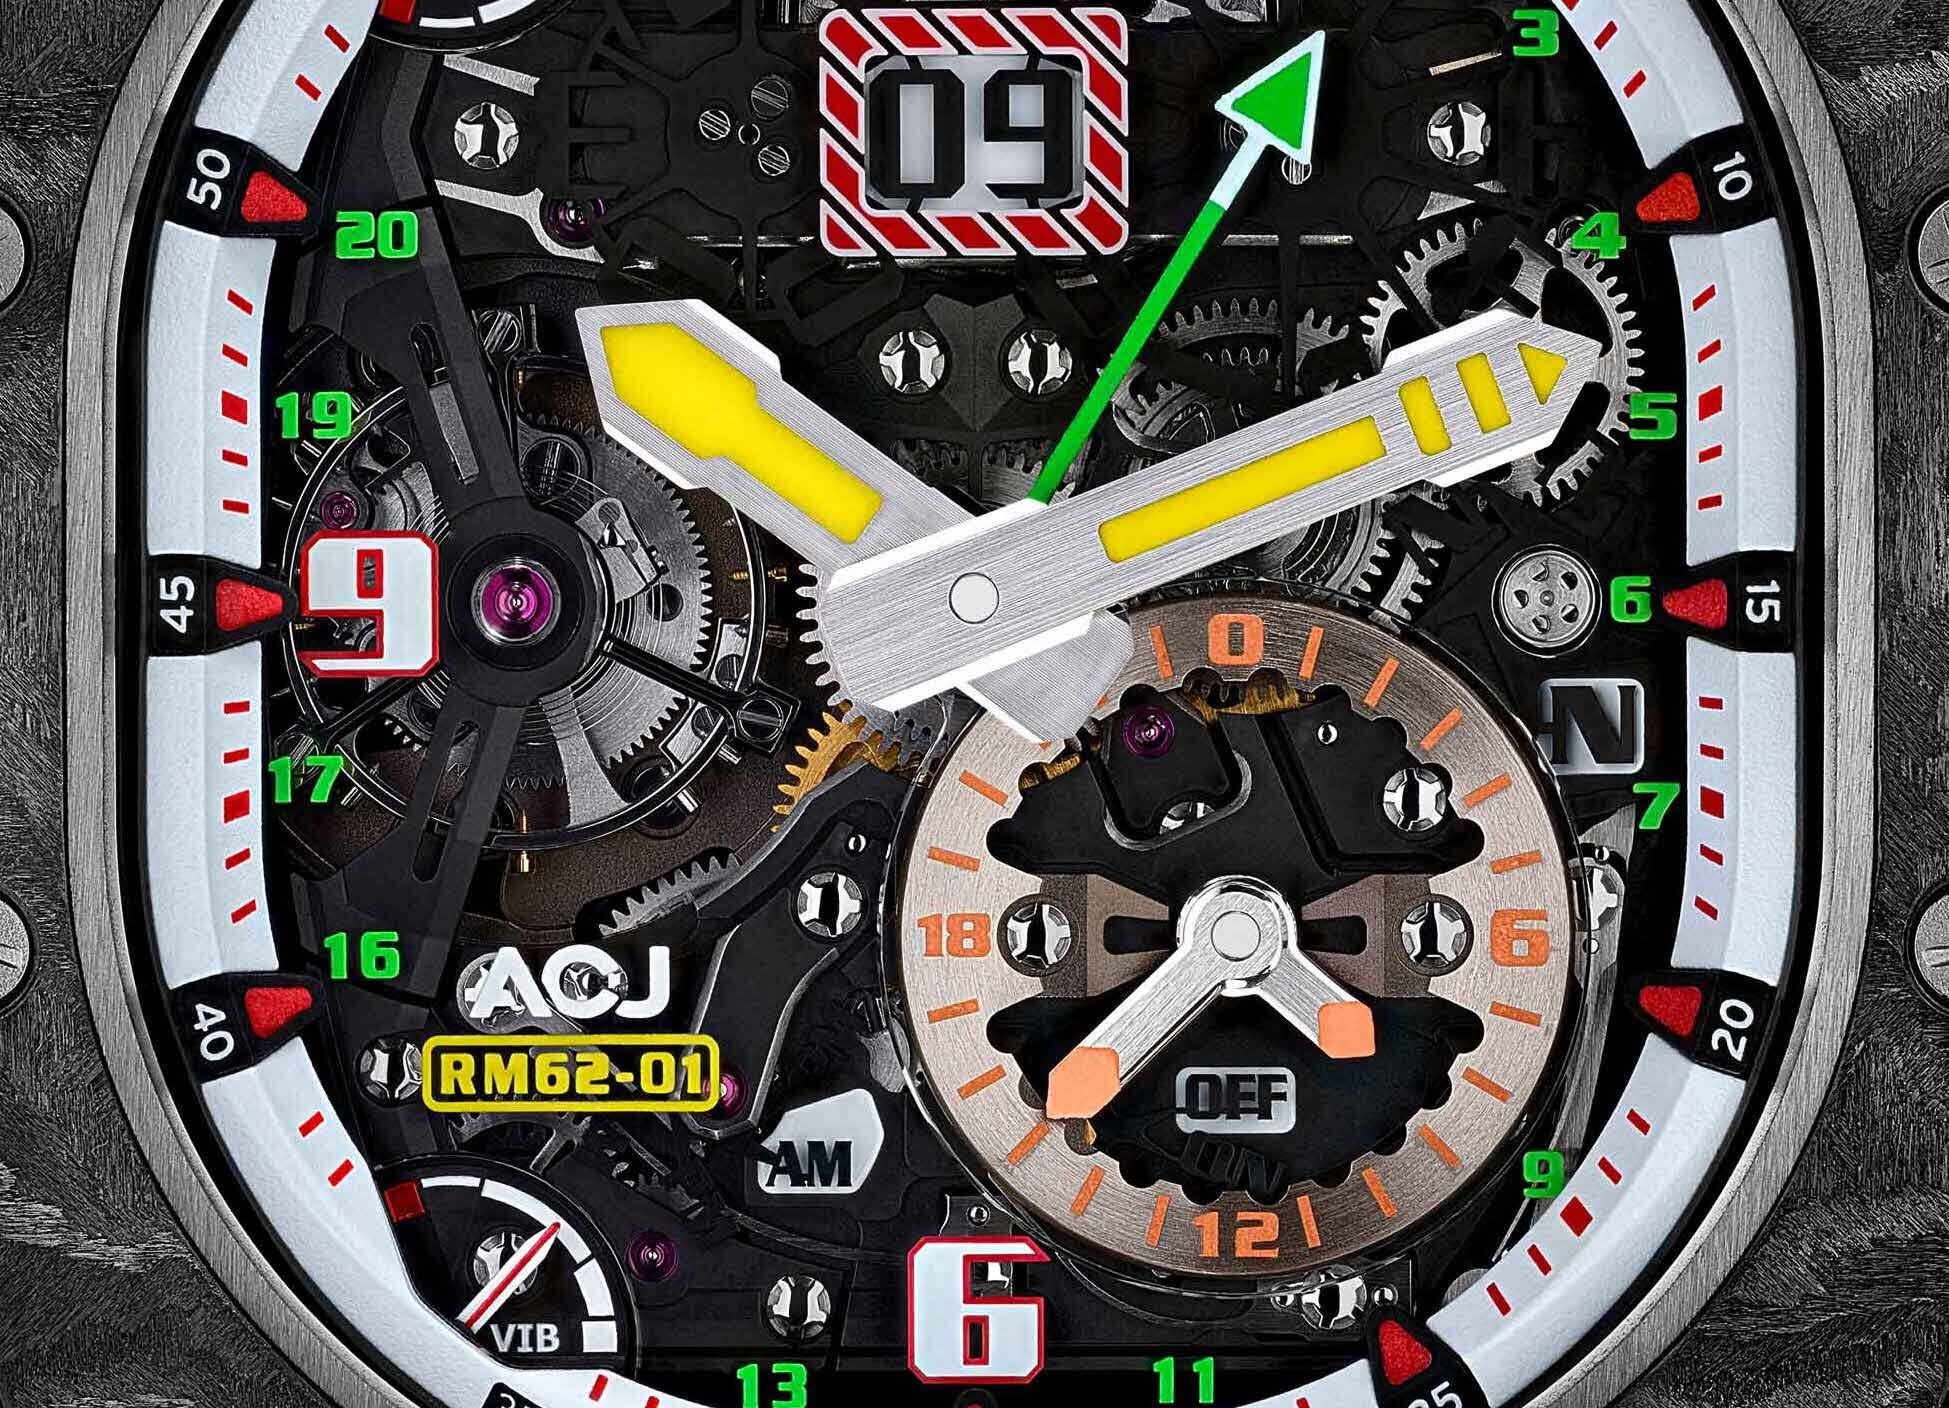 Richard Mille RM62-01 WCL